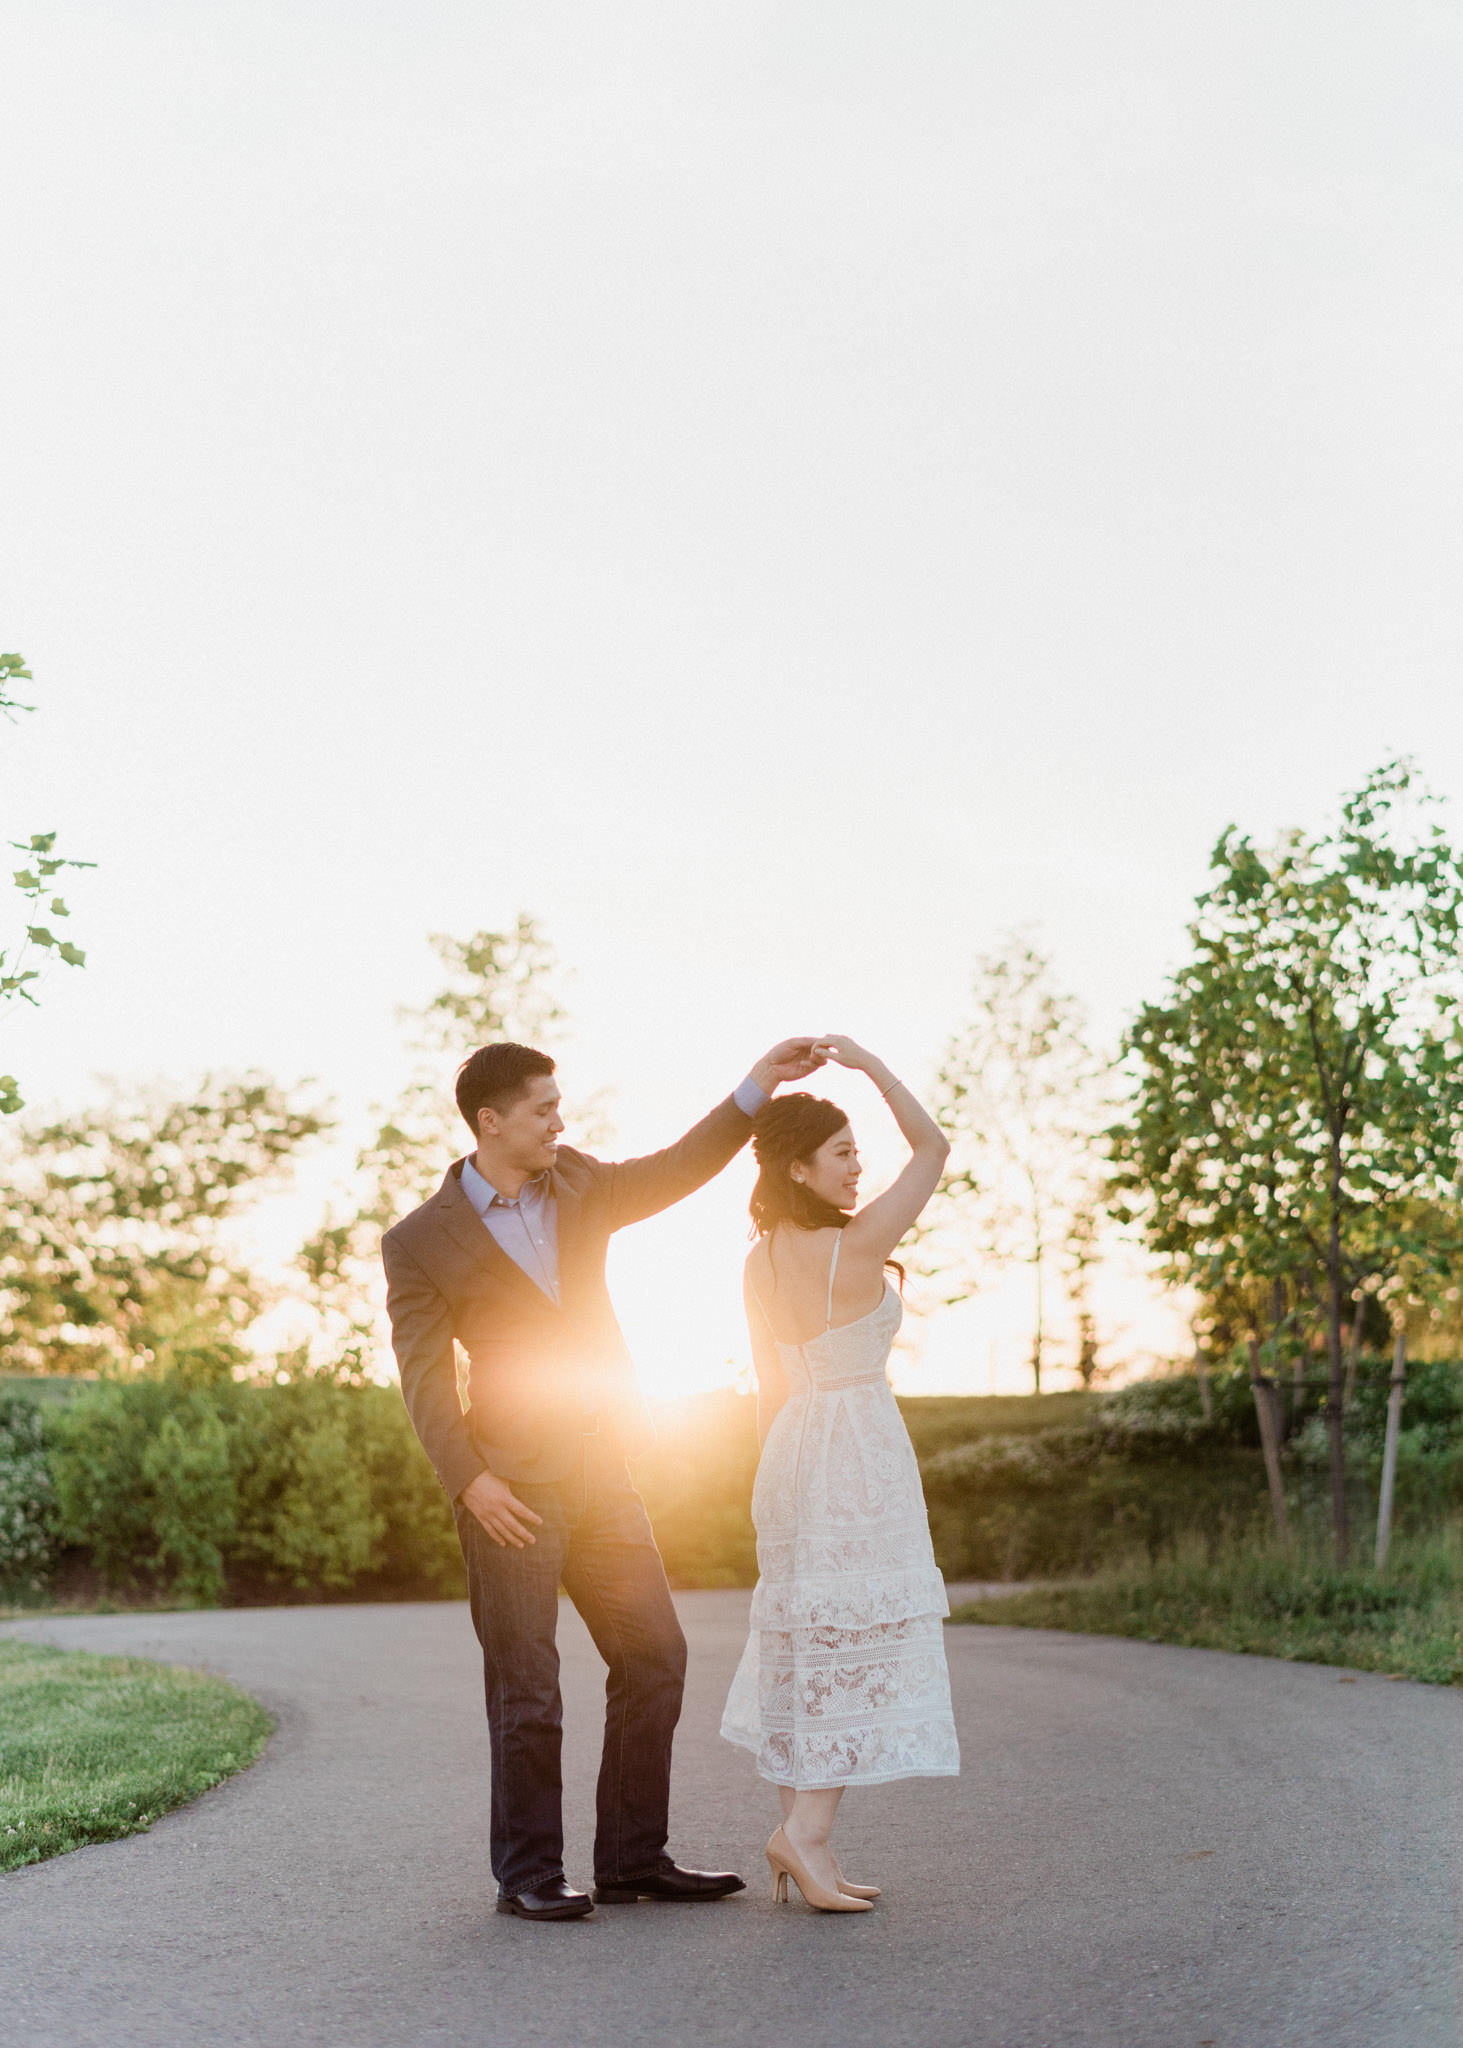 Couple dancing at sunset in Trillium Park during engagement session